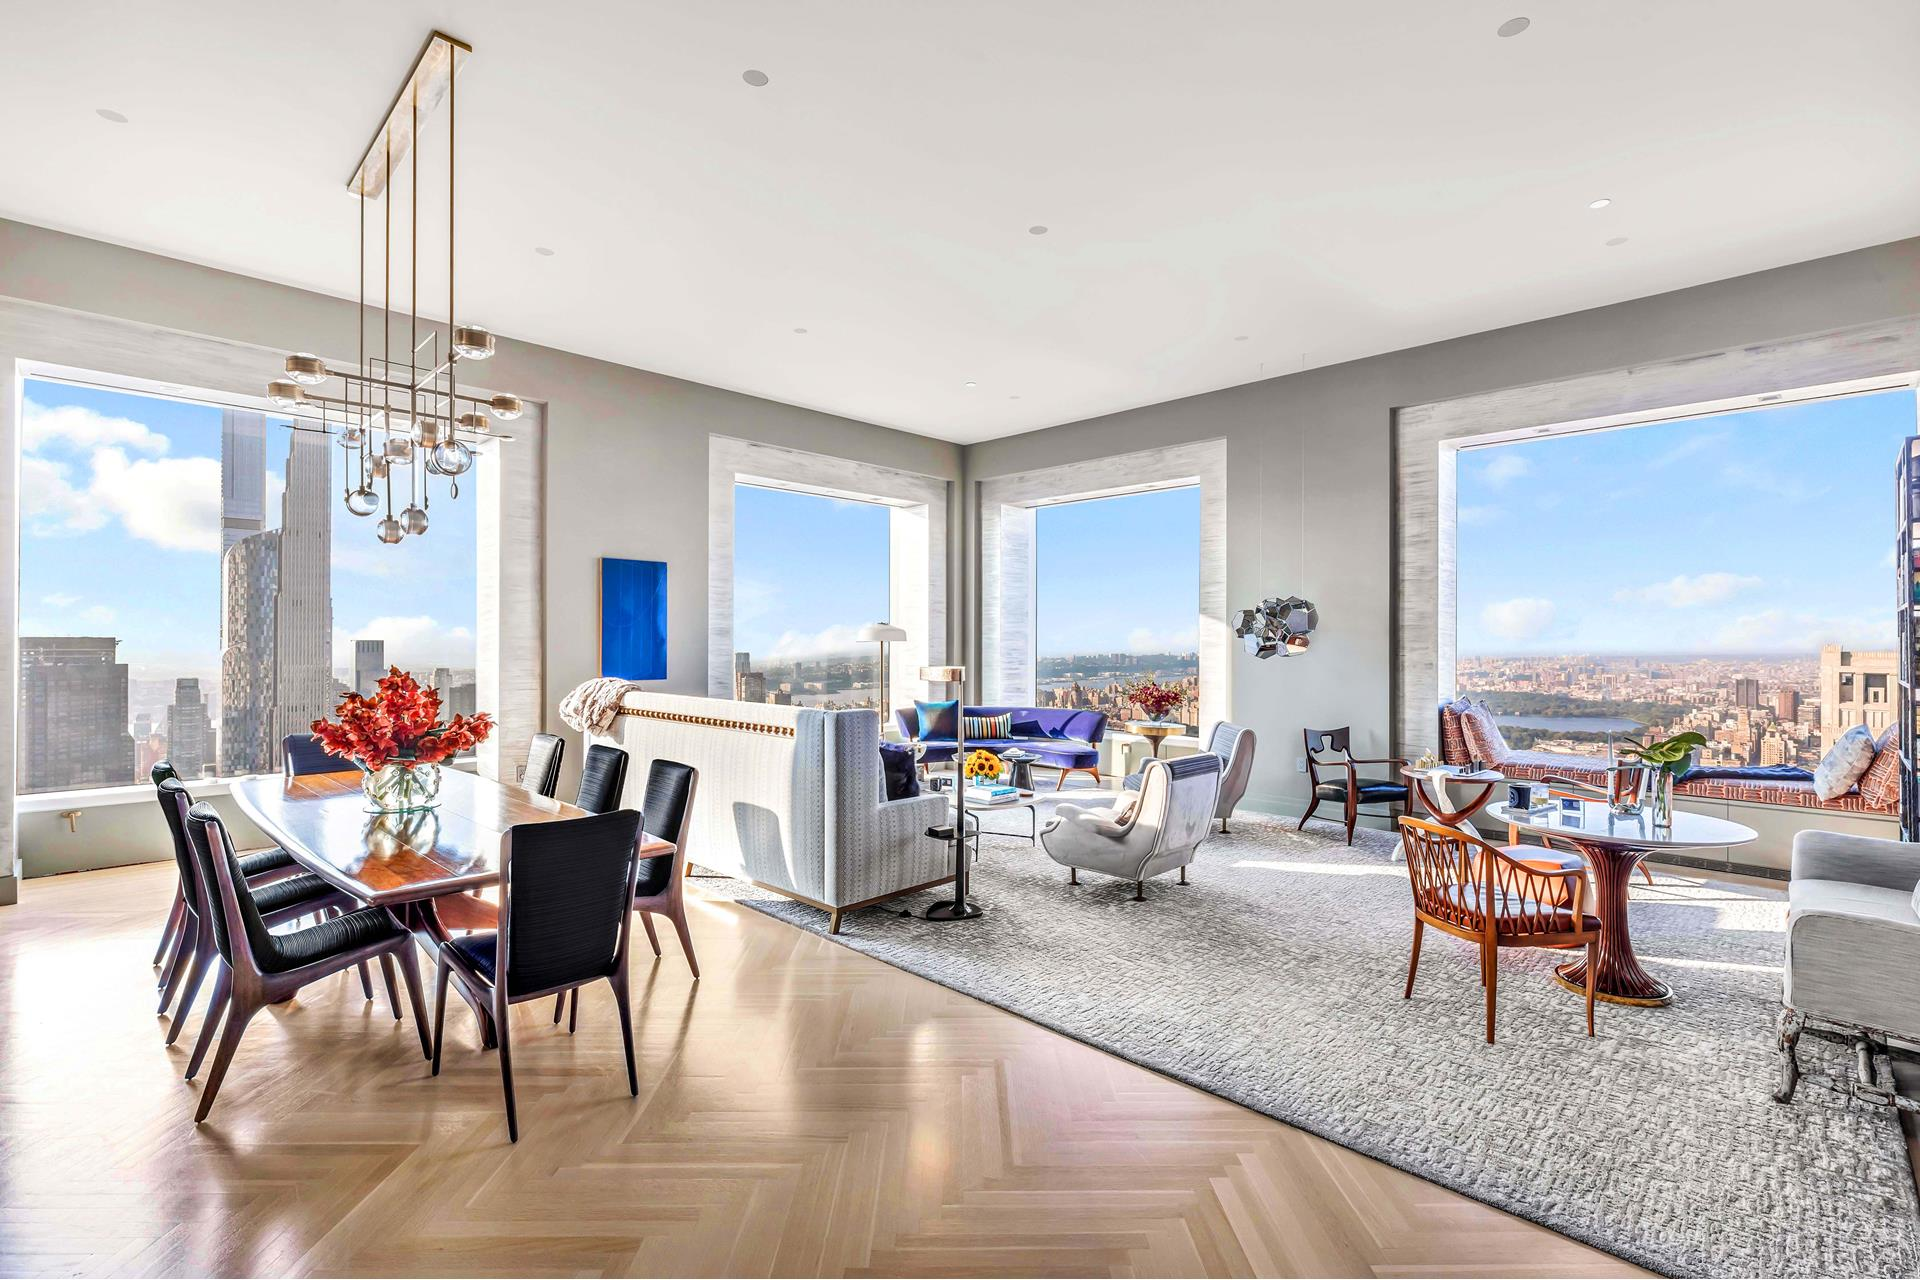 """This incredible residence, located on a higher floor of iconic 432 Park Avenue, designed by architect Rafael Vi oly, offers spectacular views to the west, north, and south. Central Park, Midtown Manhattan, the Hudson River, the Empire State Building, the   New York harbor in the distance, and beyond, are captured in spectacular 10' by 10' windows, under soaring 12'6"""" ceilings. It is a jaw-dropping panorama of the city. You enter the residence, which occupies a full half floor of the building, via a private elevator   entry and gallery, leading to the den or library, and the grand, corner living and dining room.    Joe Nahem an AD100 designer helped create this masterpiece of a home. The eat-in kitchen with views overlooking the city and Central Park has marble floors and countertops, cabinetry of lacquer, Miele stainless steel appliances, and Dornbracht polished chrome   fixtures. There is also a service entrance leading to a small butler's pantry, a laundry room, and a private service corridor offering a discrete connection between the kitchen and bedroom wings of the home.    The master bedroom offers views in two directions of Midtown and Downtown New York, a massive walk-in dressing room, two separate baths swathed in floors and walls of even more marble, and vanities topped with substantial cubic marble slabs. The egg shaped,   free standing tub is perfectly positioned next to the window where one can overlook the sunset with complete privacy. Meanwhile, the second and third bedrooms include ensuite baths, also richly finished, and views to the south.    Rising 1,396 feet above exclusive Park Avenue, 432 Park became an instant New York icon even before completion. Known for its exclusive address, world-class amenities, and innovative design, 432 Park nonetheless stands out most for its views, which due to its   sheer herculean height, allows it to embrace not just all of Park Avenue but also the great expanse of Central Park, beginning two blocks away, in one g"""